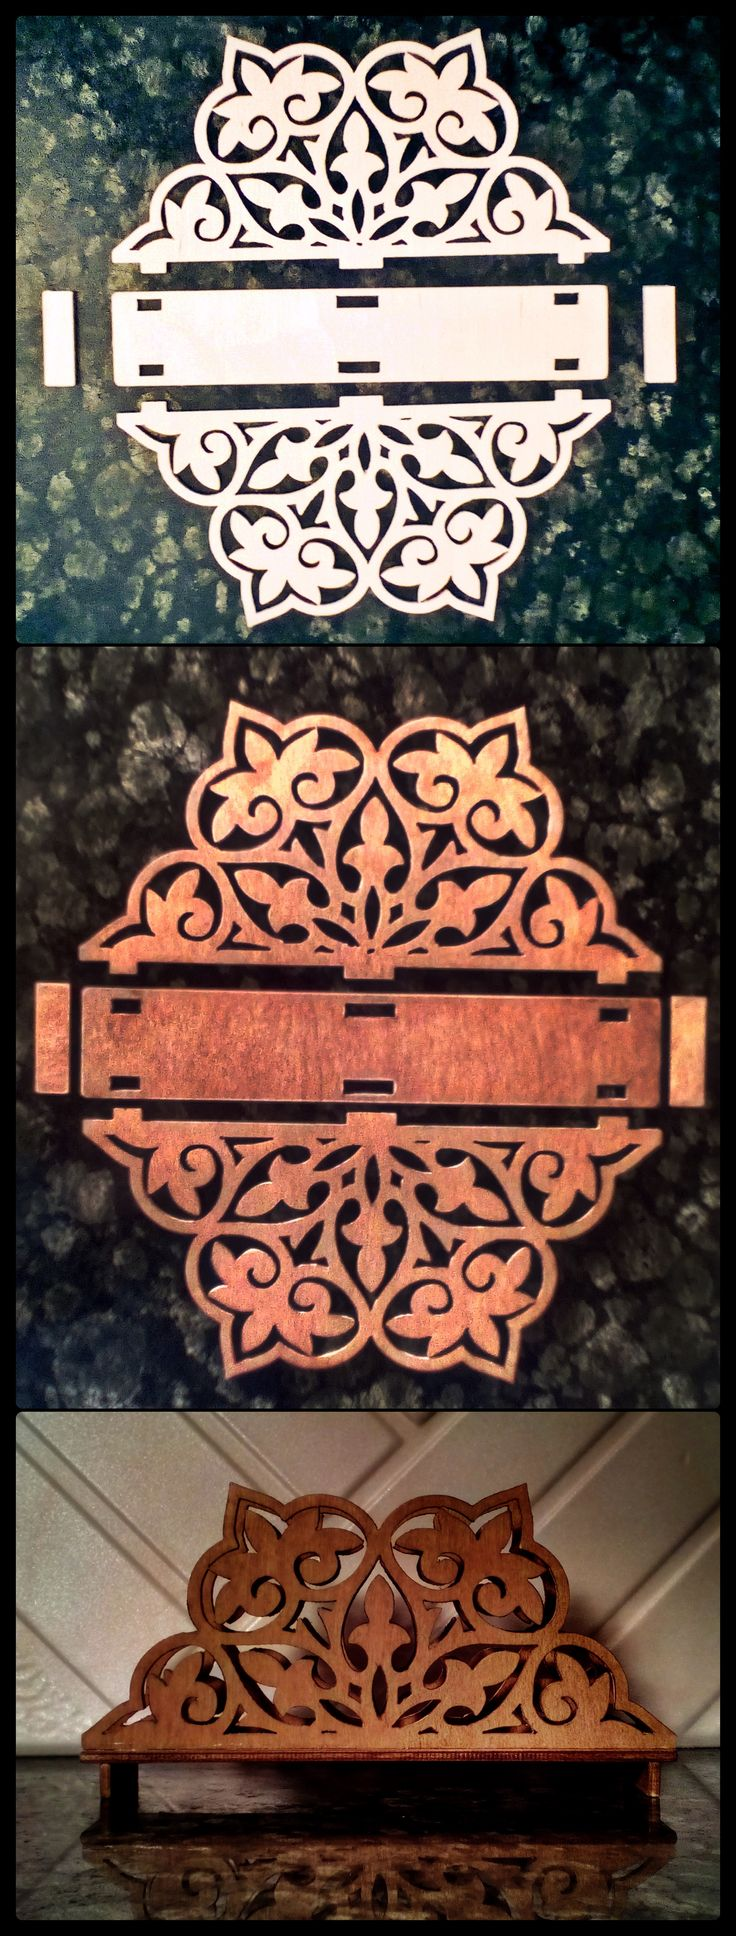 Birch wood 4mm thick. Oil coated with a rosewood shade.Cut with a cnc milling machine. It's simple. 1.Came up with the idea and design. 2.Draw project in the program. 3.Converted to cnc code 4.Get a timber. 5.Run the milling machine. 6.Paint,glued and that's it. And have a masterpiece. Now you can decorate. Decorate rooms, making them comfortable.